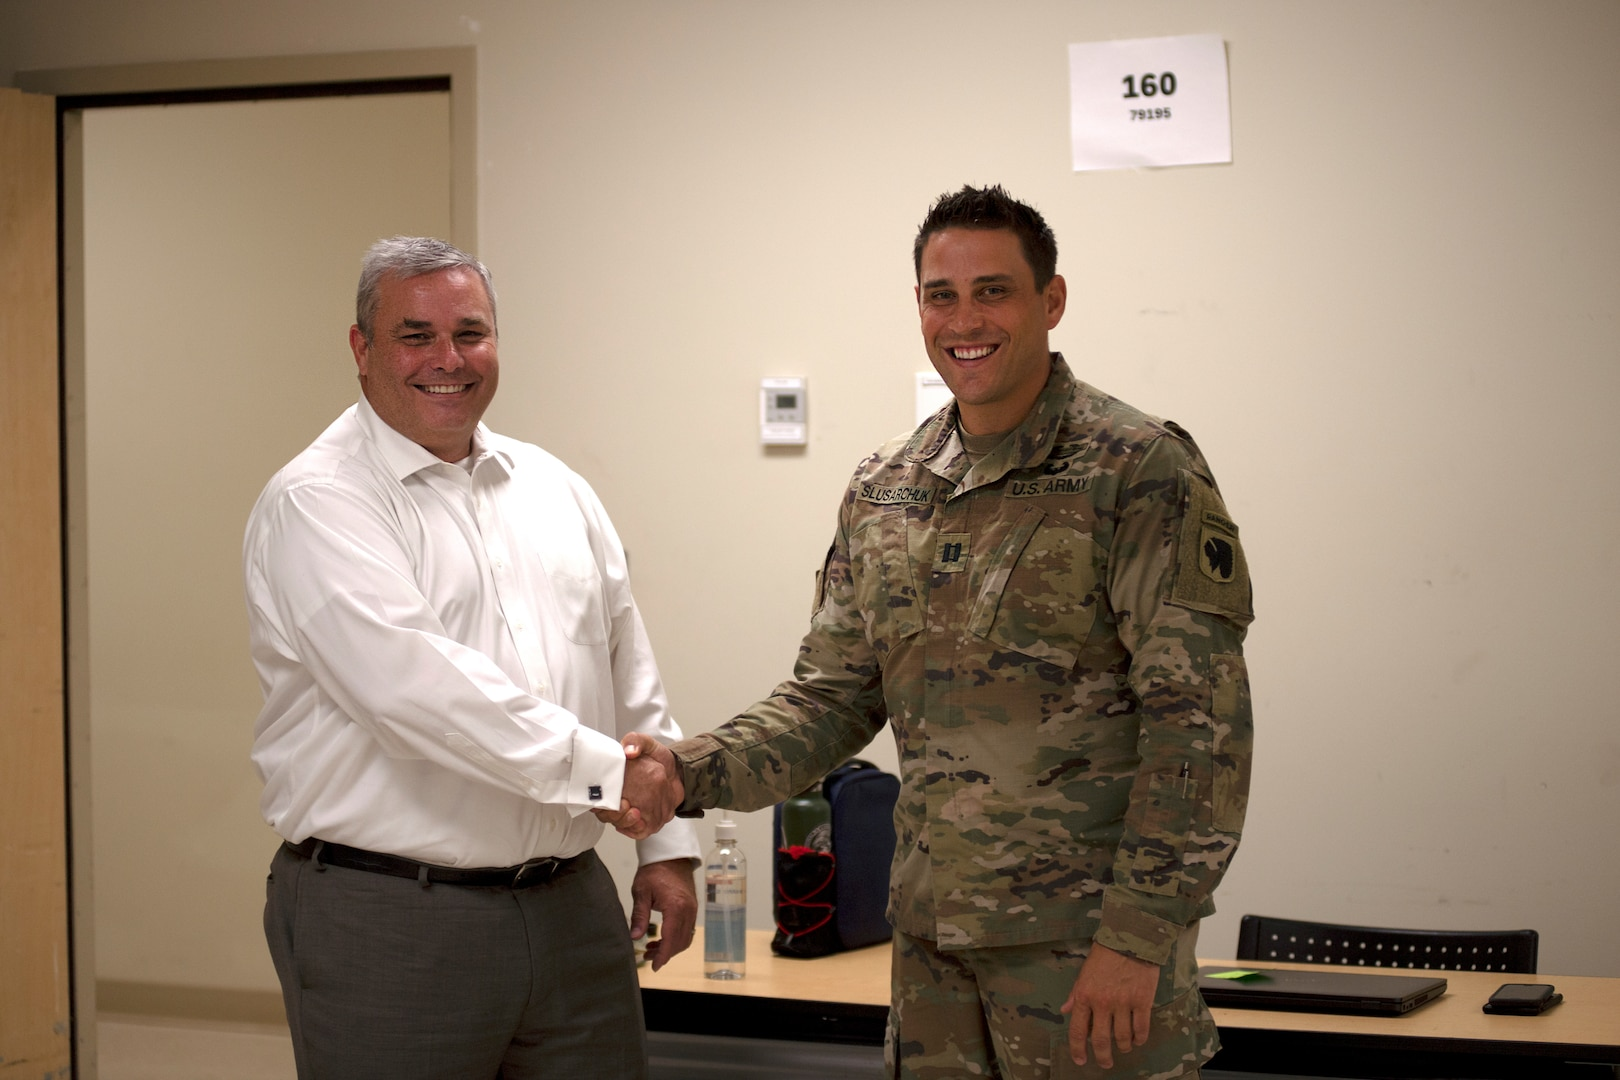 Capt. Danny Sluscharuk, Defense Cyber Operations Element chief with the Oklahoma National Guard defensive cyber operations team, shakes hands with Oklahoma State Bureau of Investigation Lt. Michael Dean, director of the OSBI Fusion Center, during Cyber Shield 2021 at the Norman Armed Forces Reserve Center, Norman, Oklahoma, July 21, 2021. Cyber Shield 21 focused on working in collaboration with state agencies to identify and defend against cyber threats that compromise local and national security. (Oklahoma National Guard photo by Sgt. 1st Class Mireilie Merilice-Roberts)